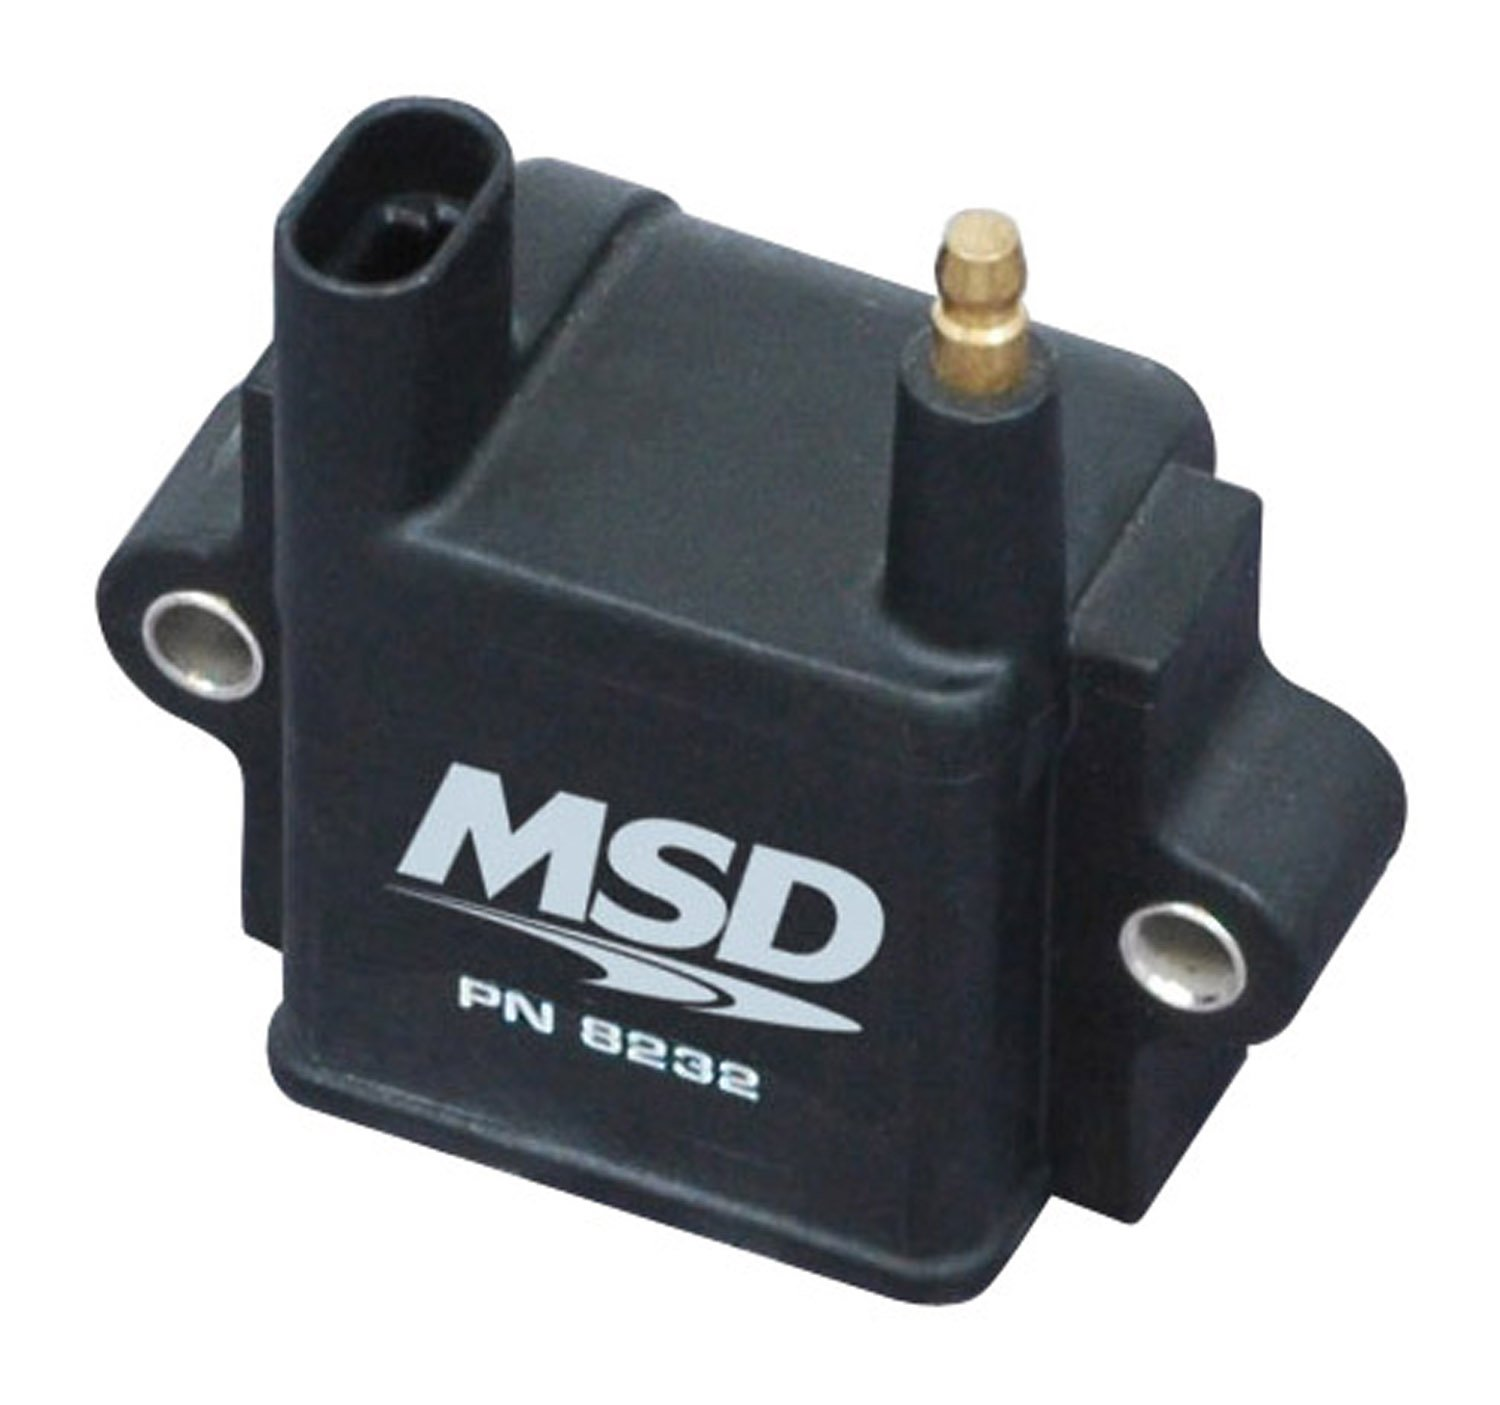 8232 msd 8232 single tower coil, cpc ignition msd performance products msd 8232 wiring diagram at webbmarketing.co